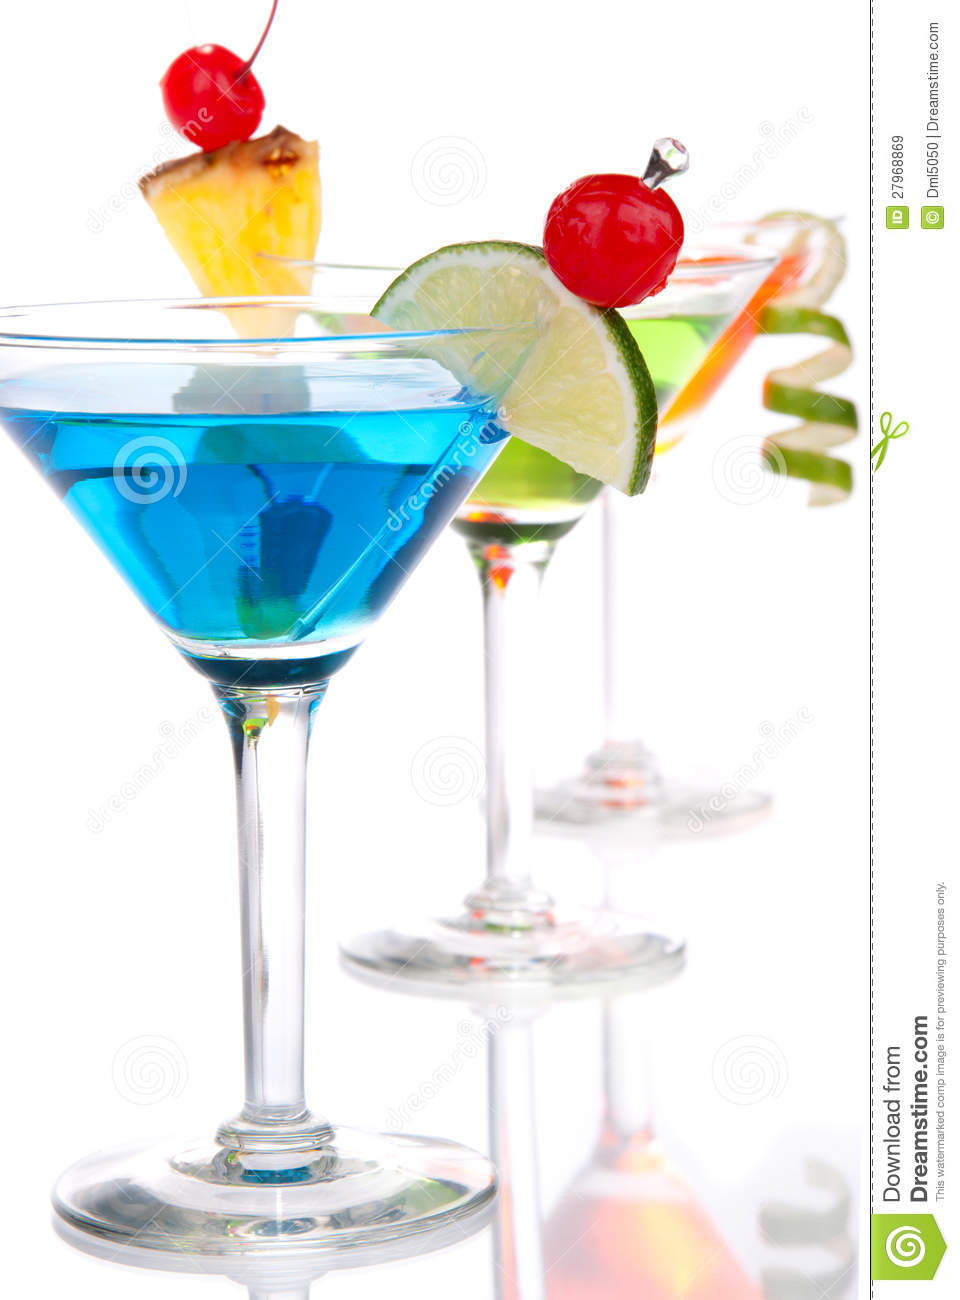 Popular alcoholic cocktails composition royalty free stock for Good alcoholic mixed drinks